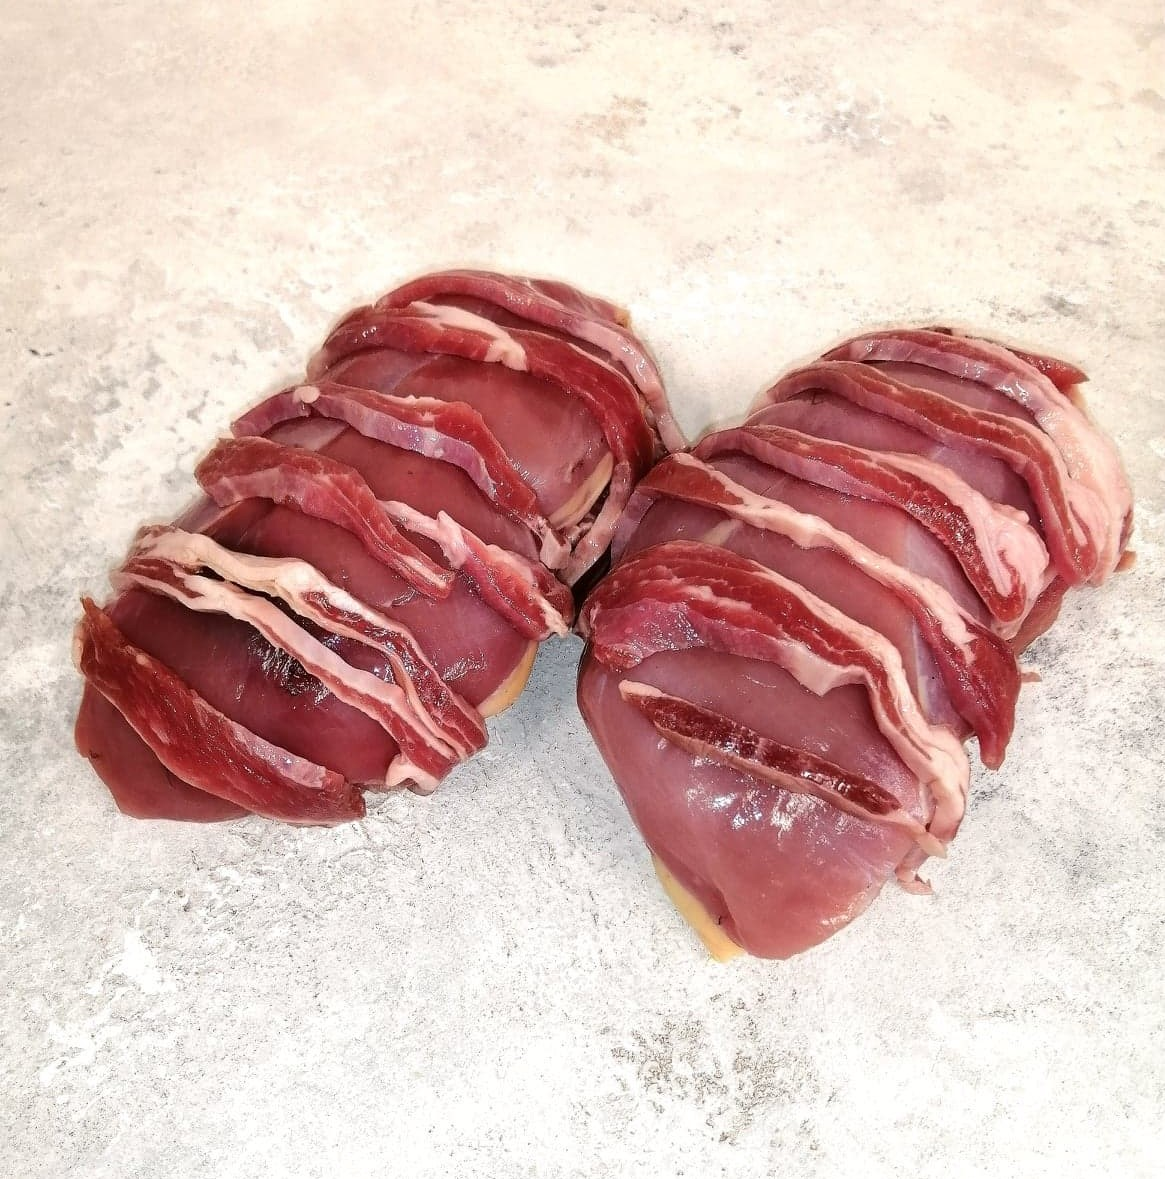 Stuffed Pheasant Breasts Wrapped In Smoked Bacon